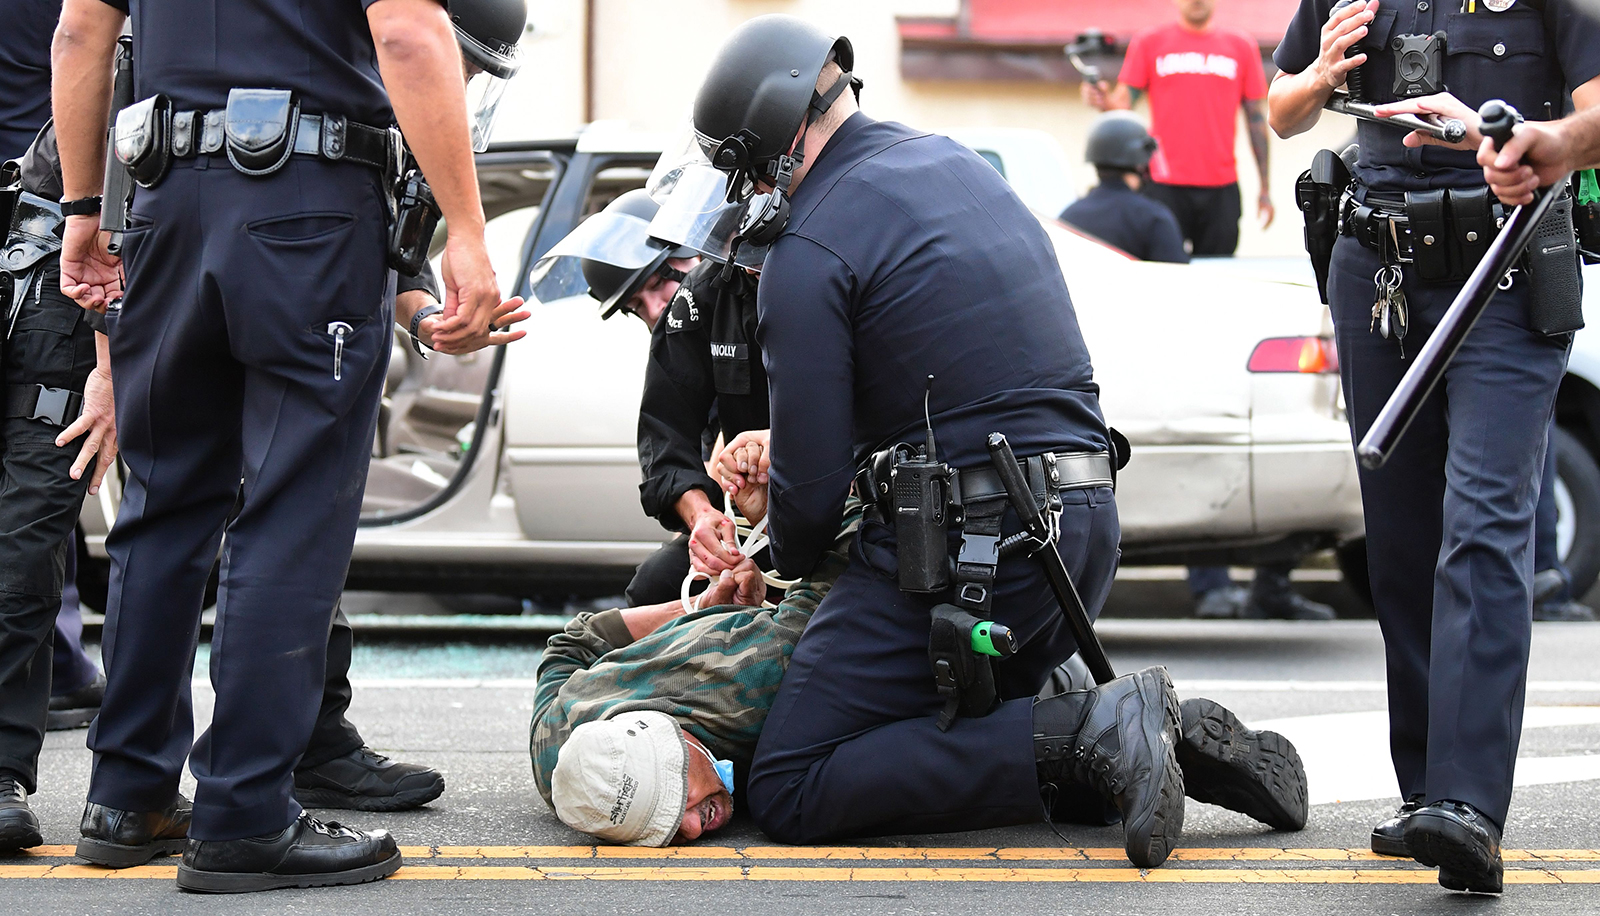 A man is arrested by Los Angeles police officers for violating curfew in Hollywood, California on June 2.